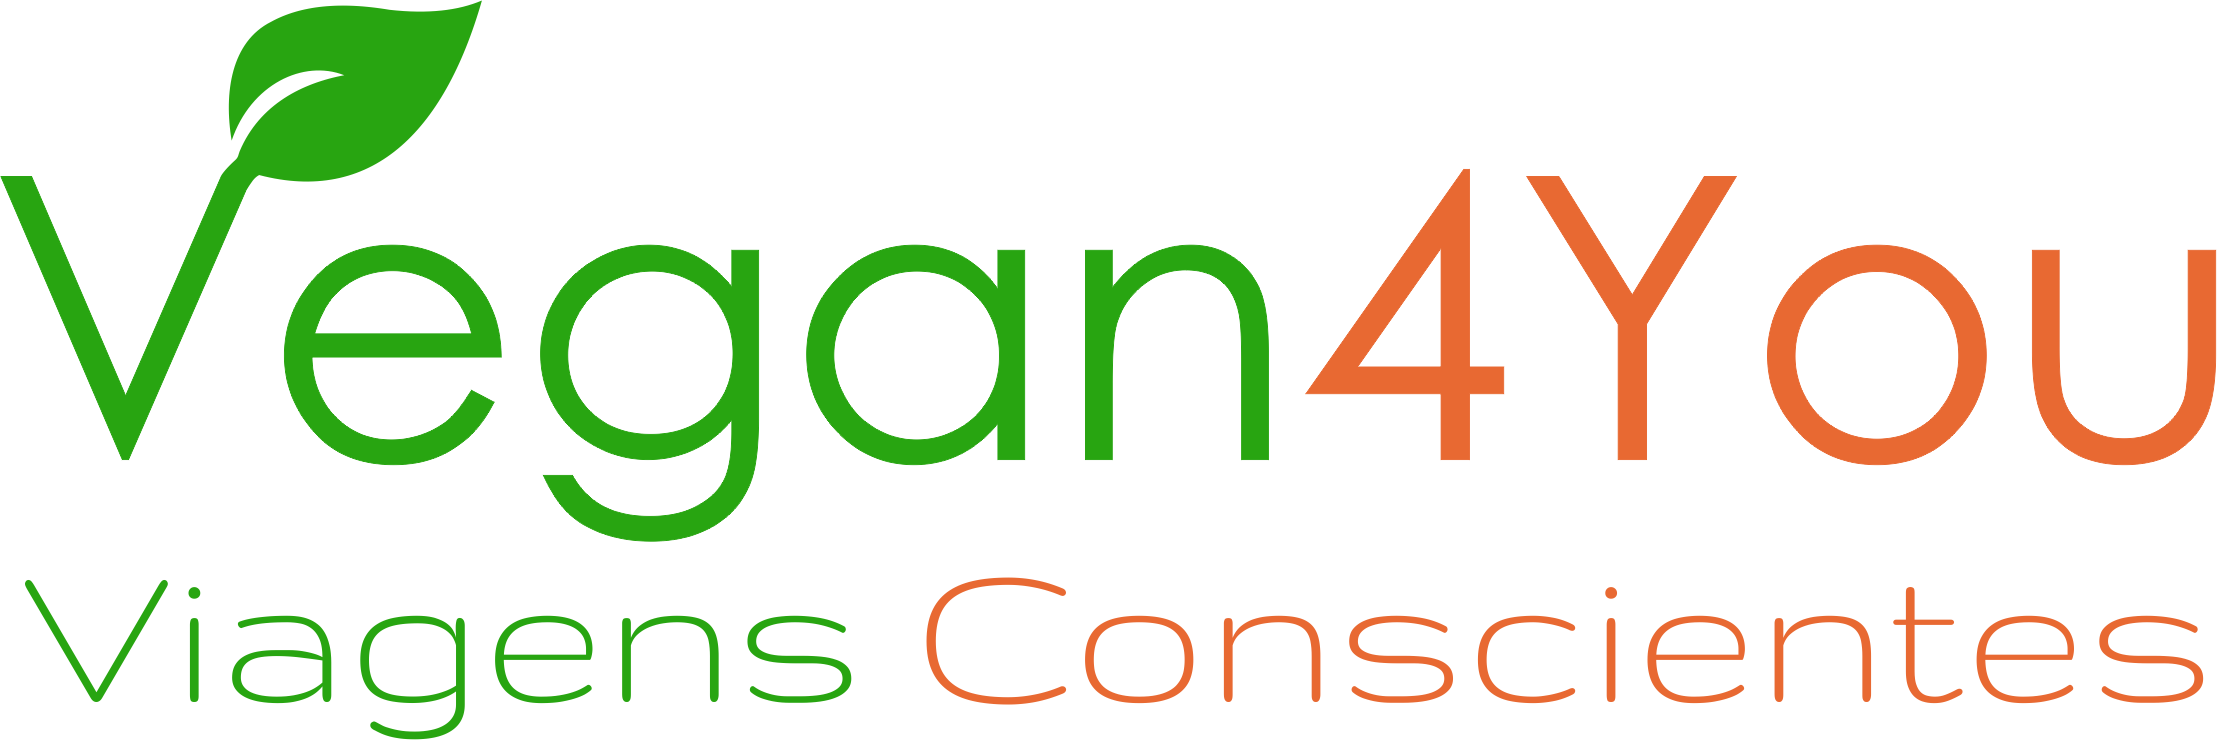 Vegan4You Viagens Conscientes